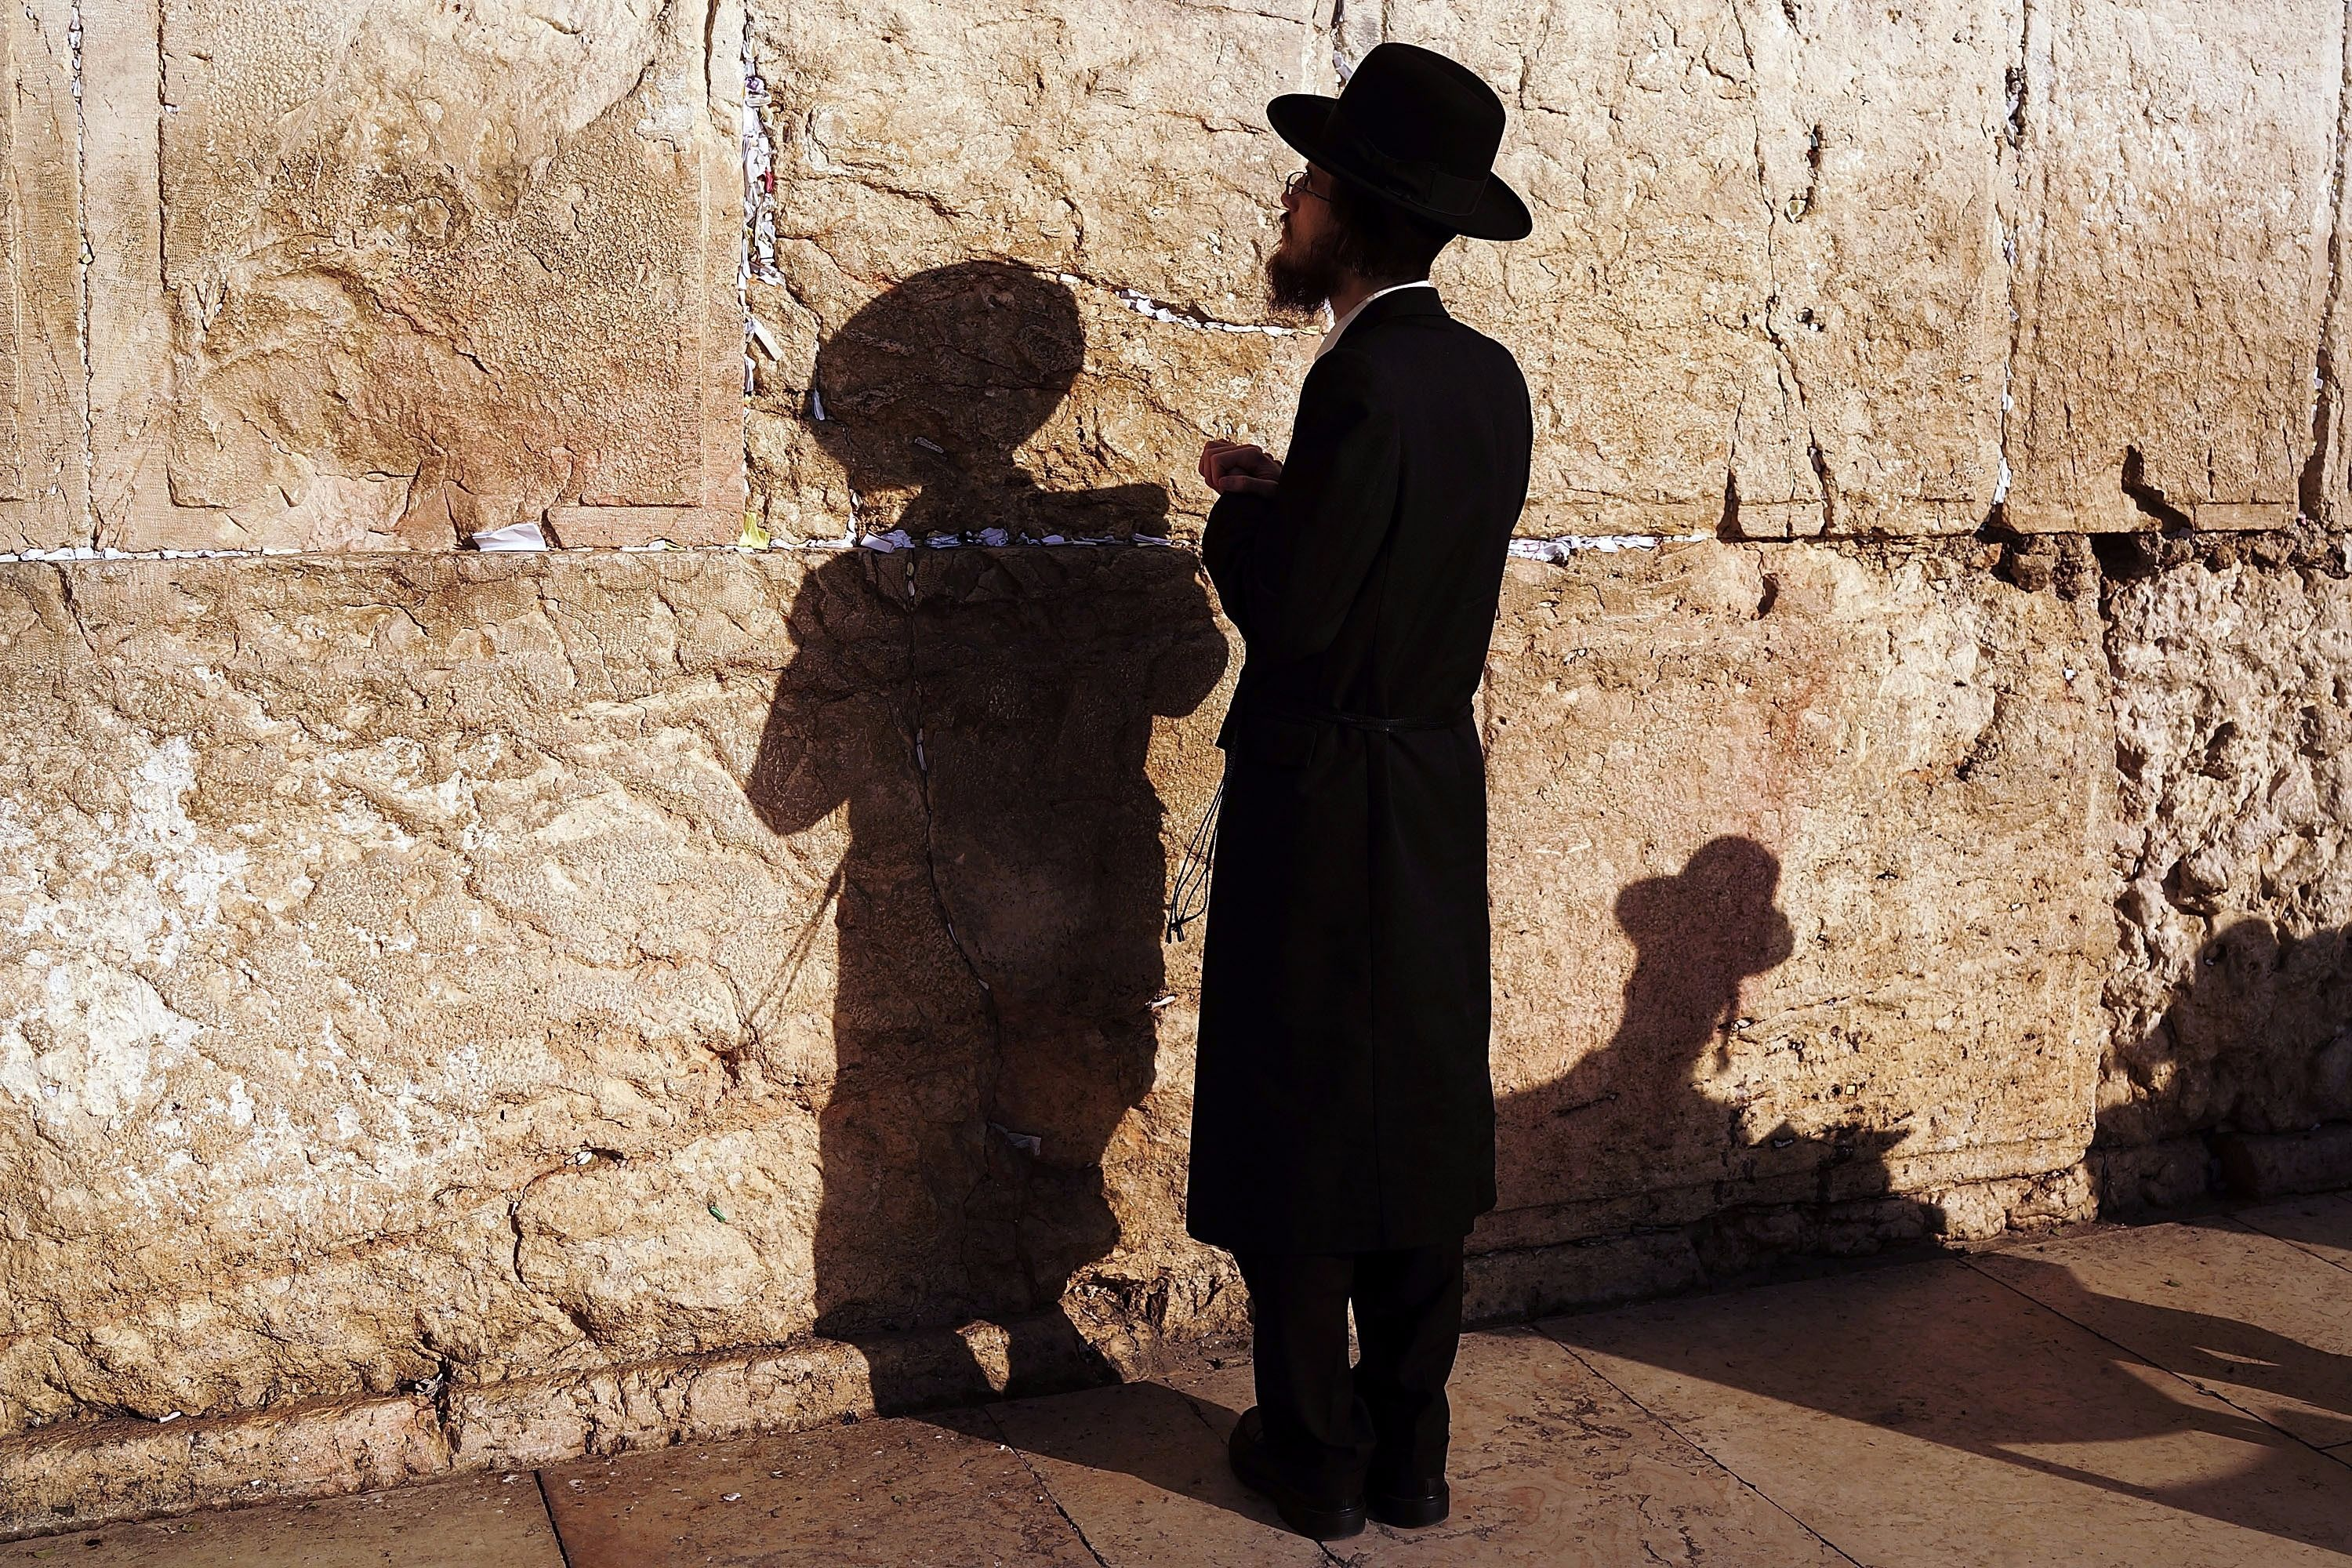 An Orthodox man prays at the Western Wall in the Old City of Jerusalem.